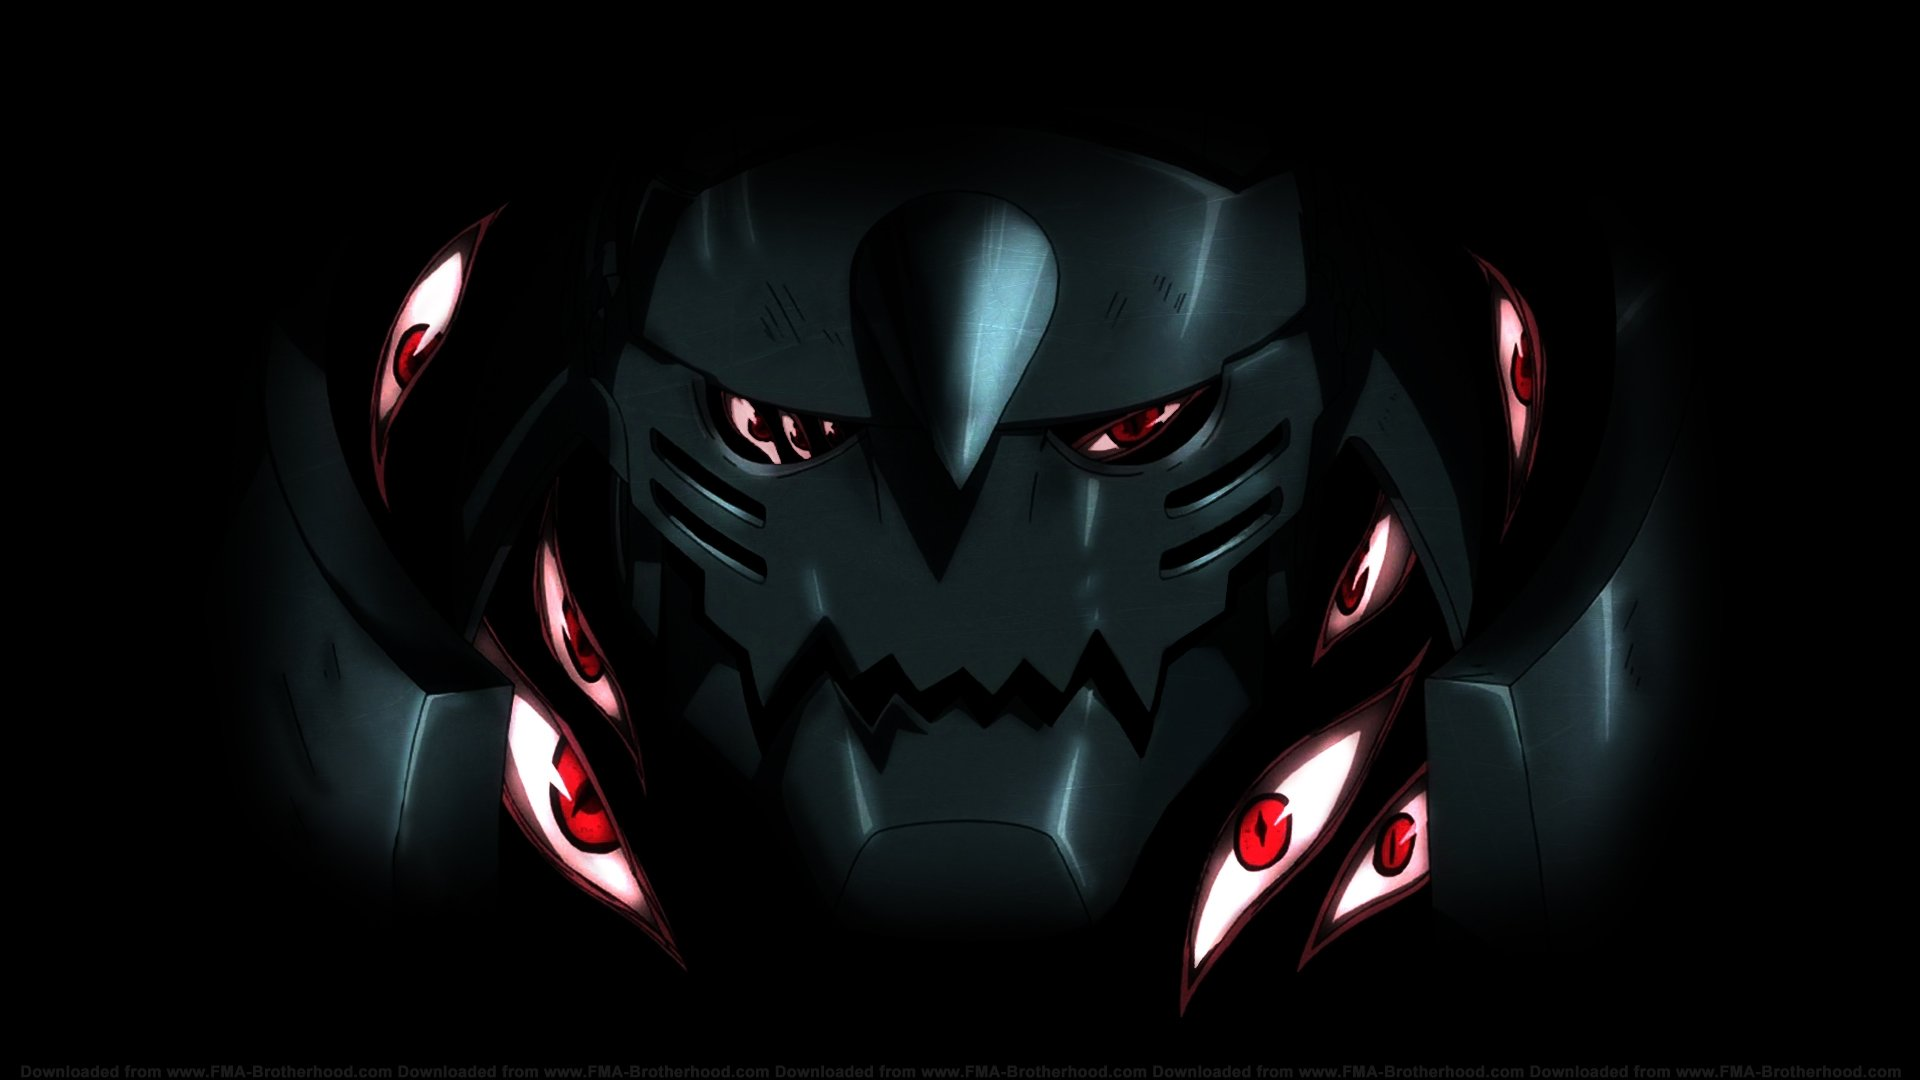 Download full hd FullMetal Alchemist (FMA) PC background ID:310717 for free